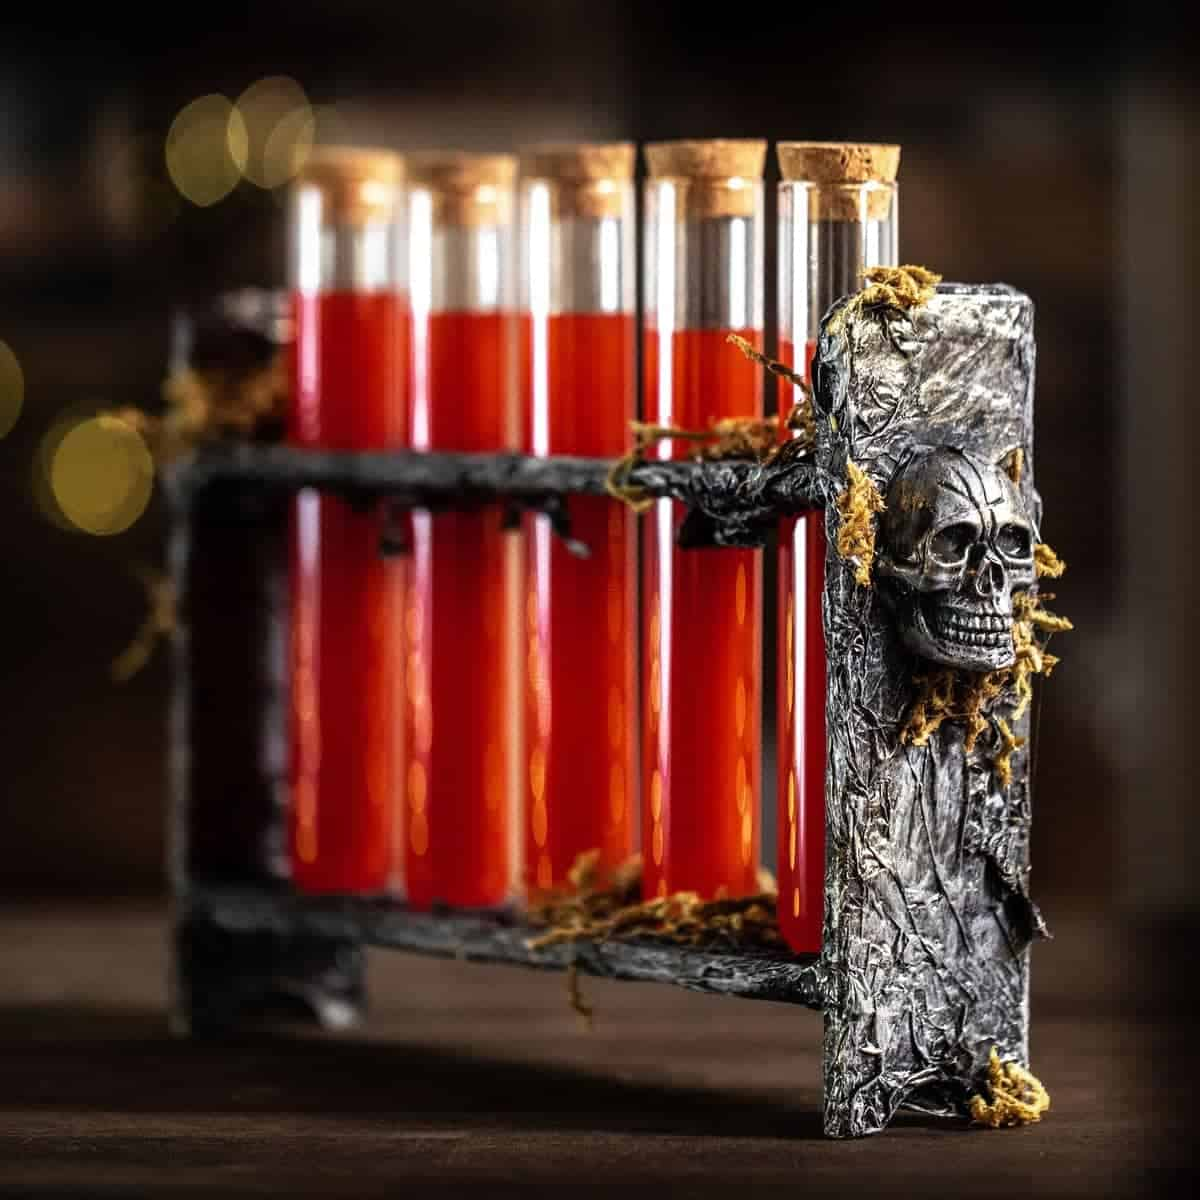 Scientist Shot Glass Vials Halloween Craft